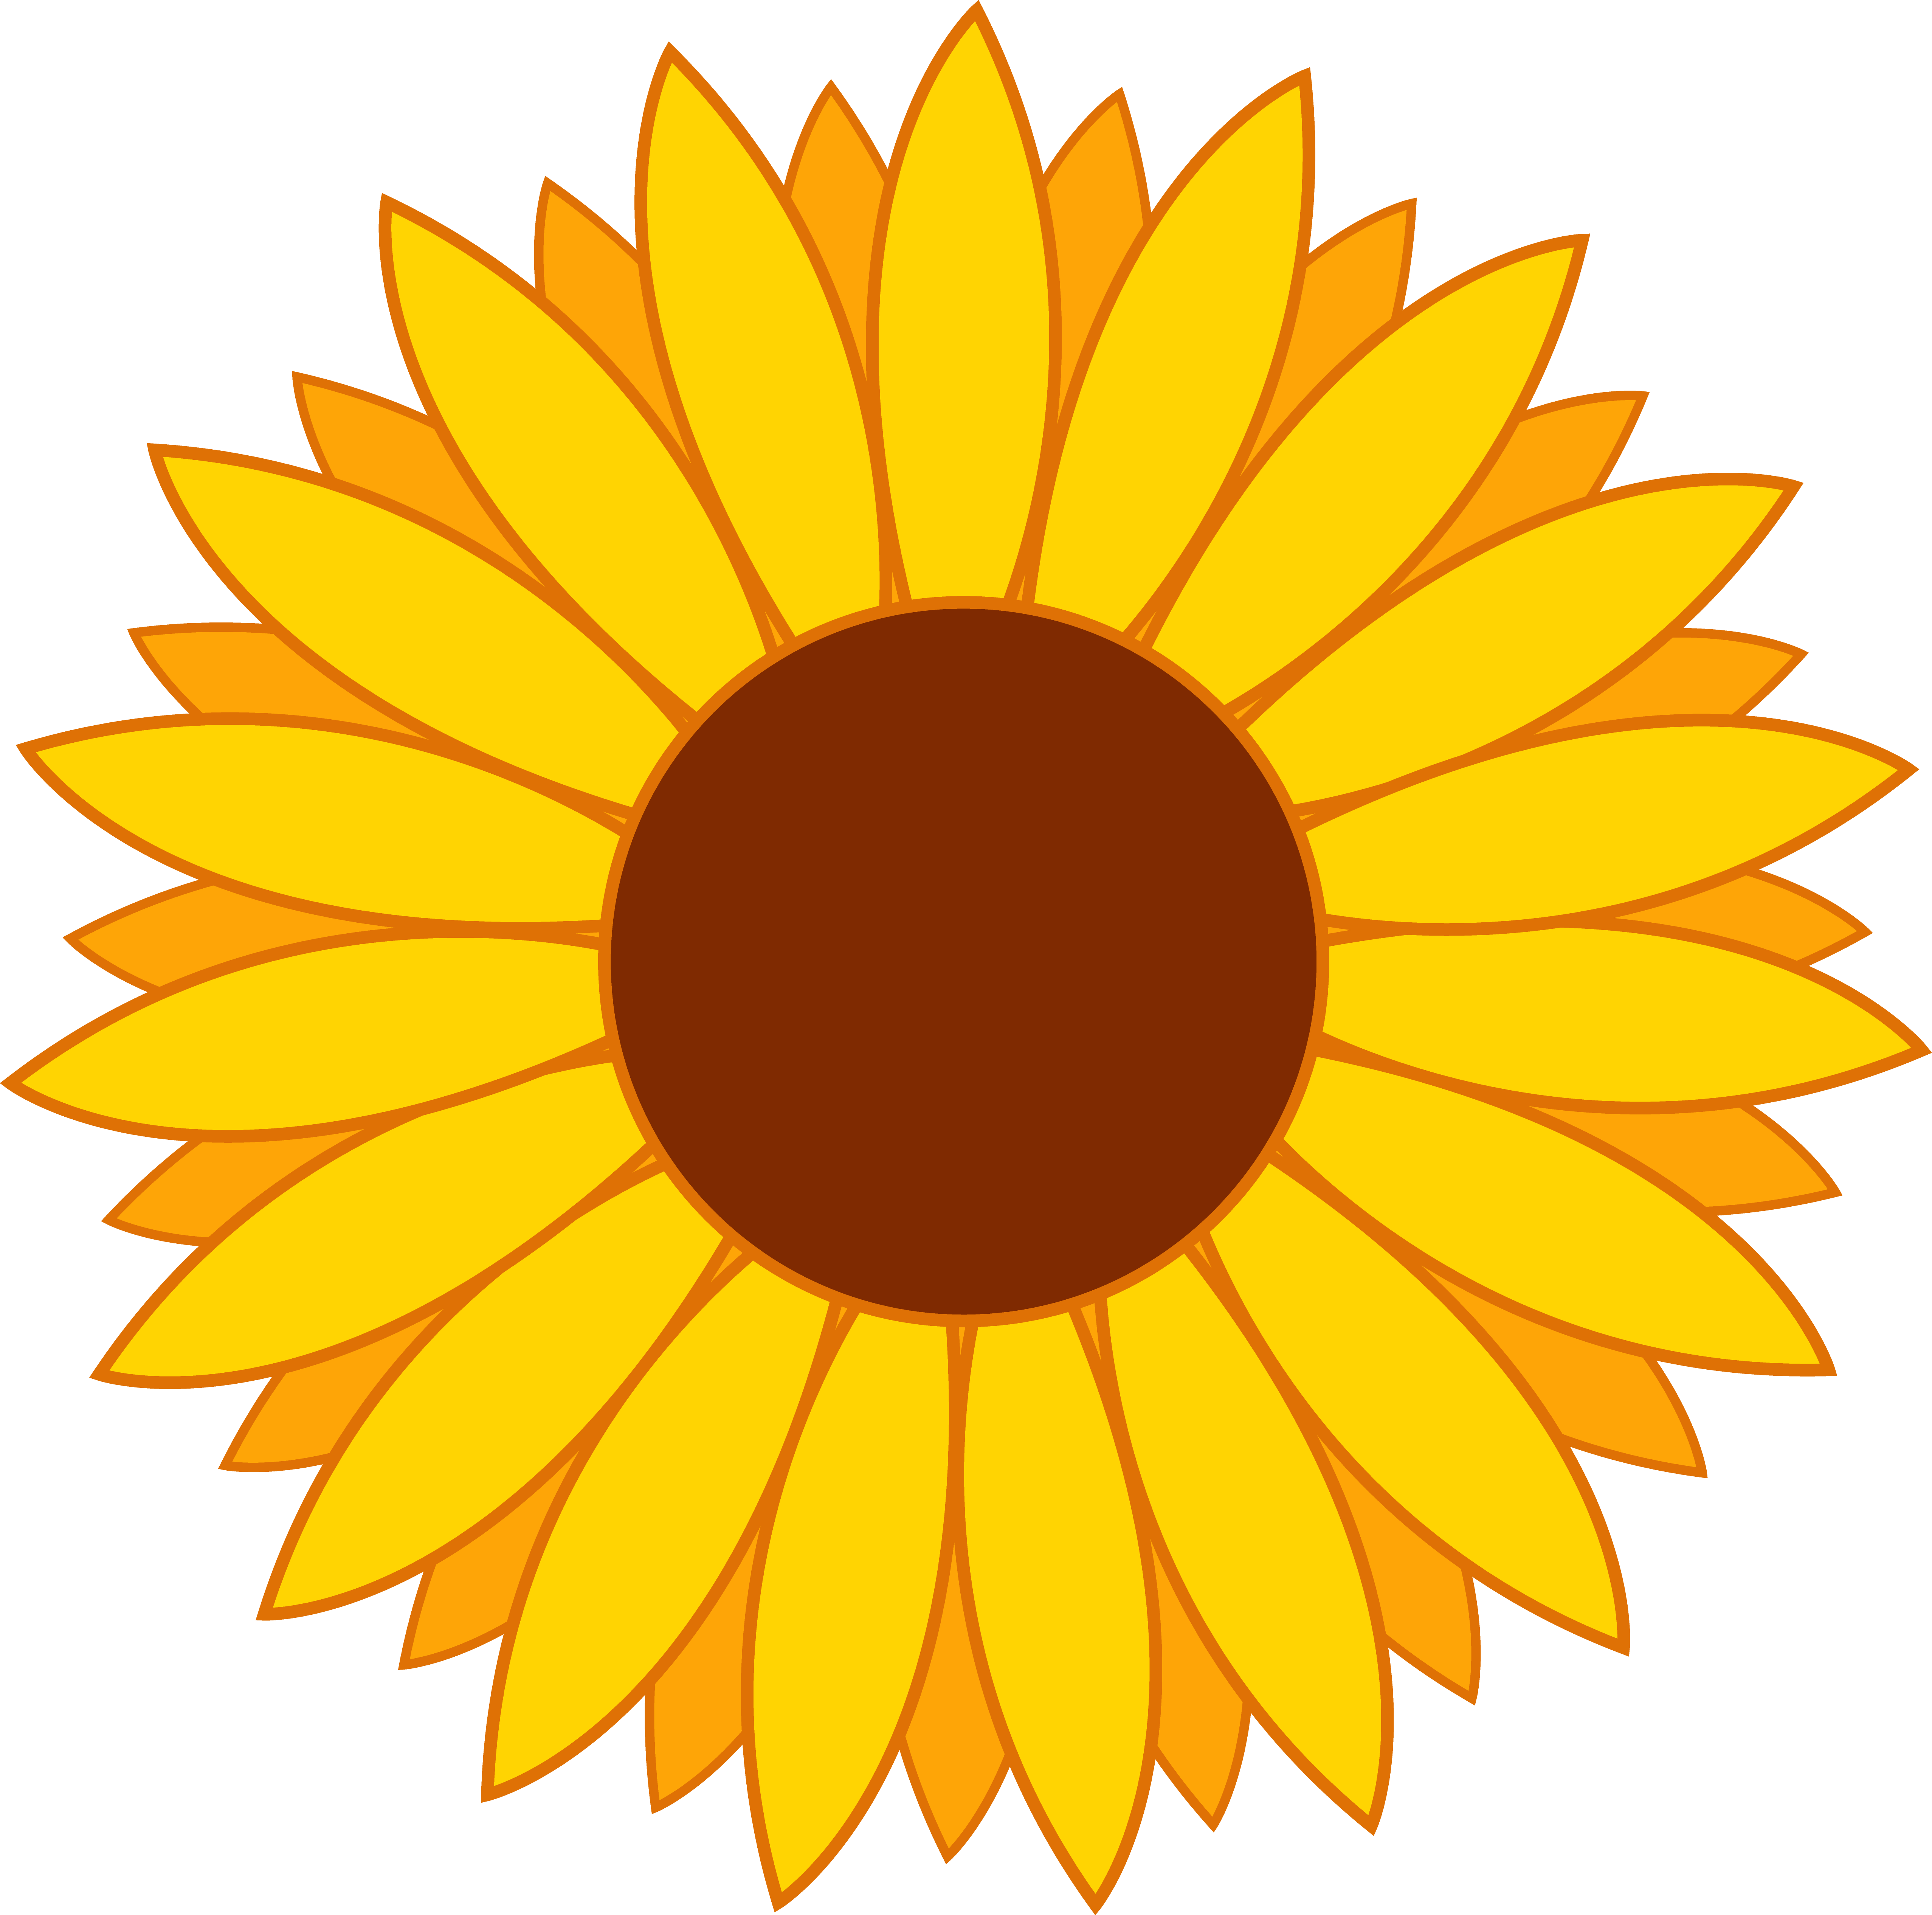 Sunflower clipart Clip Clipart Sunflower Free Printable